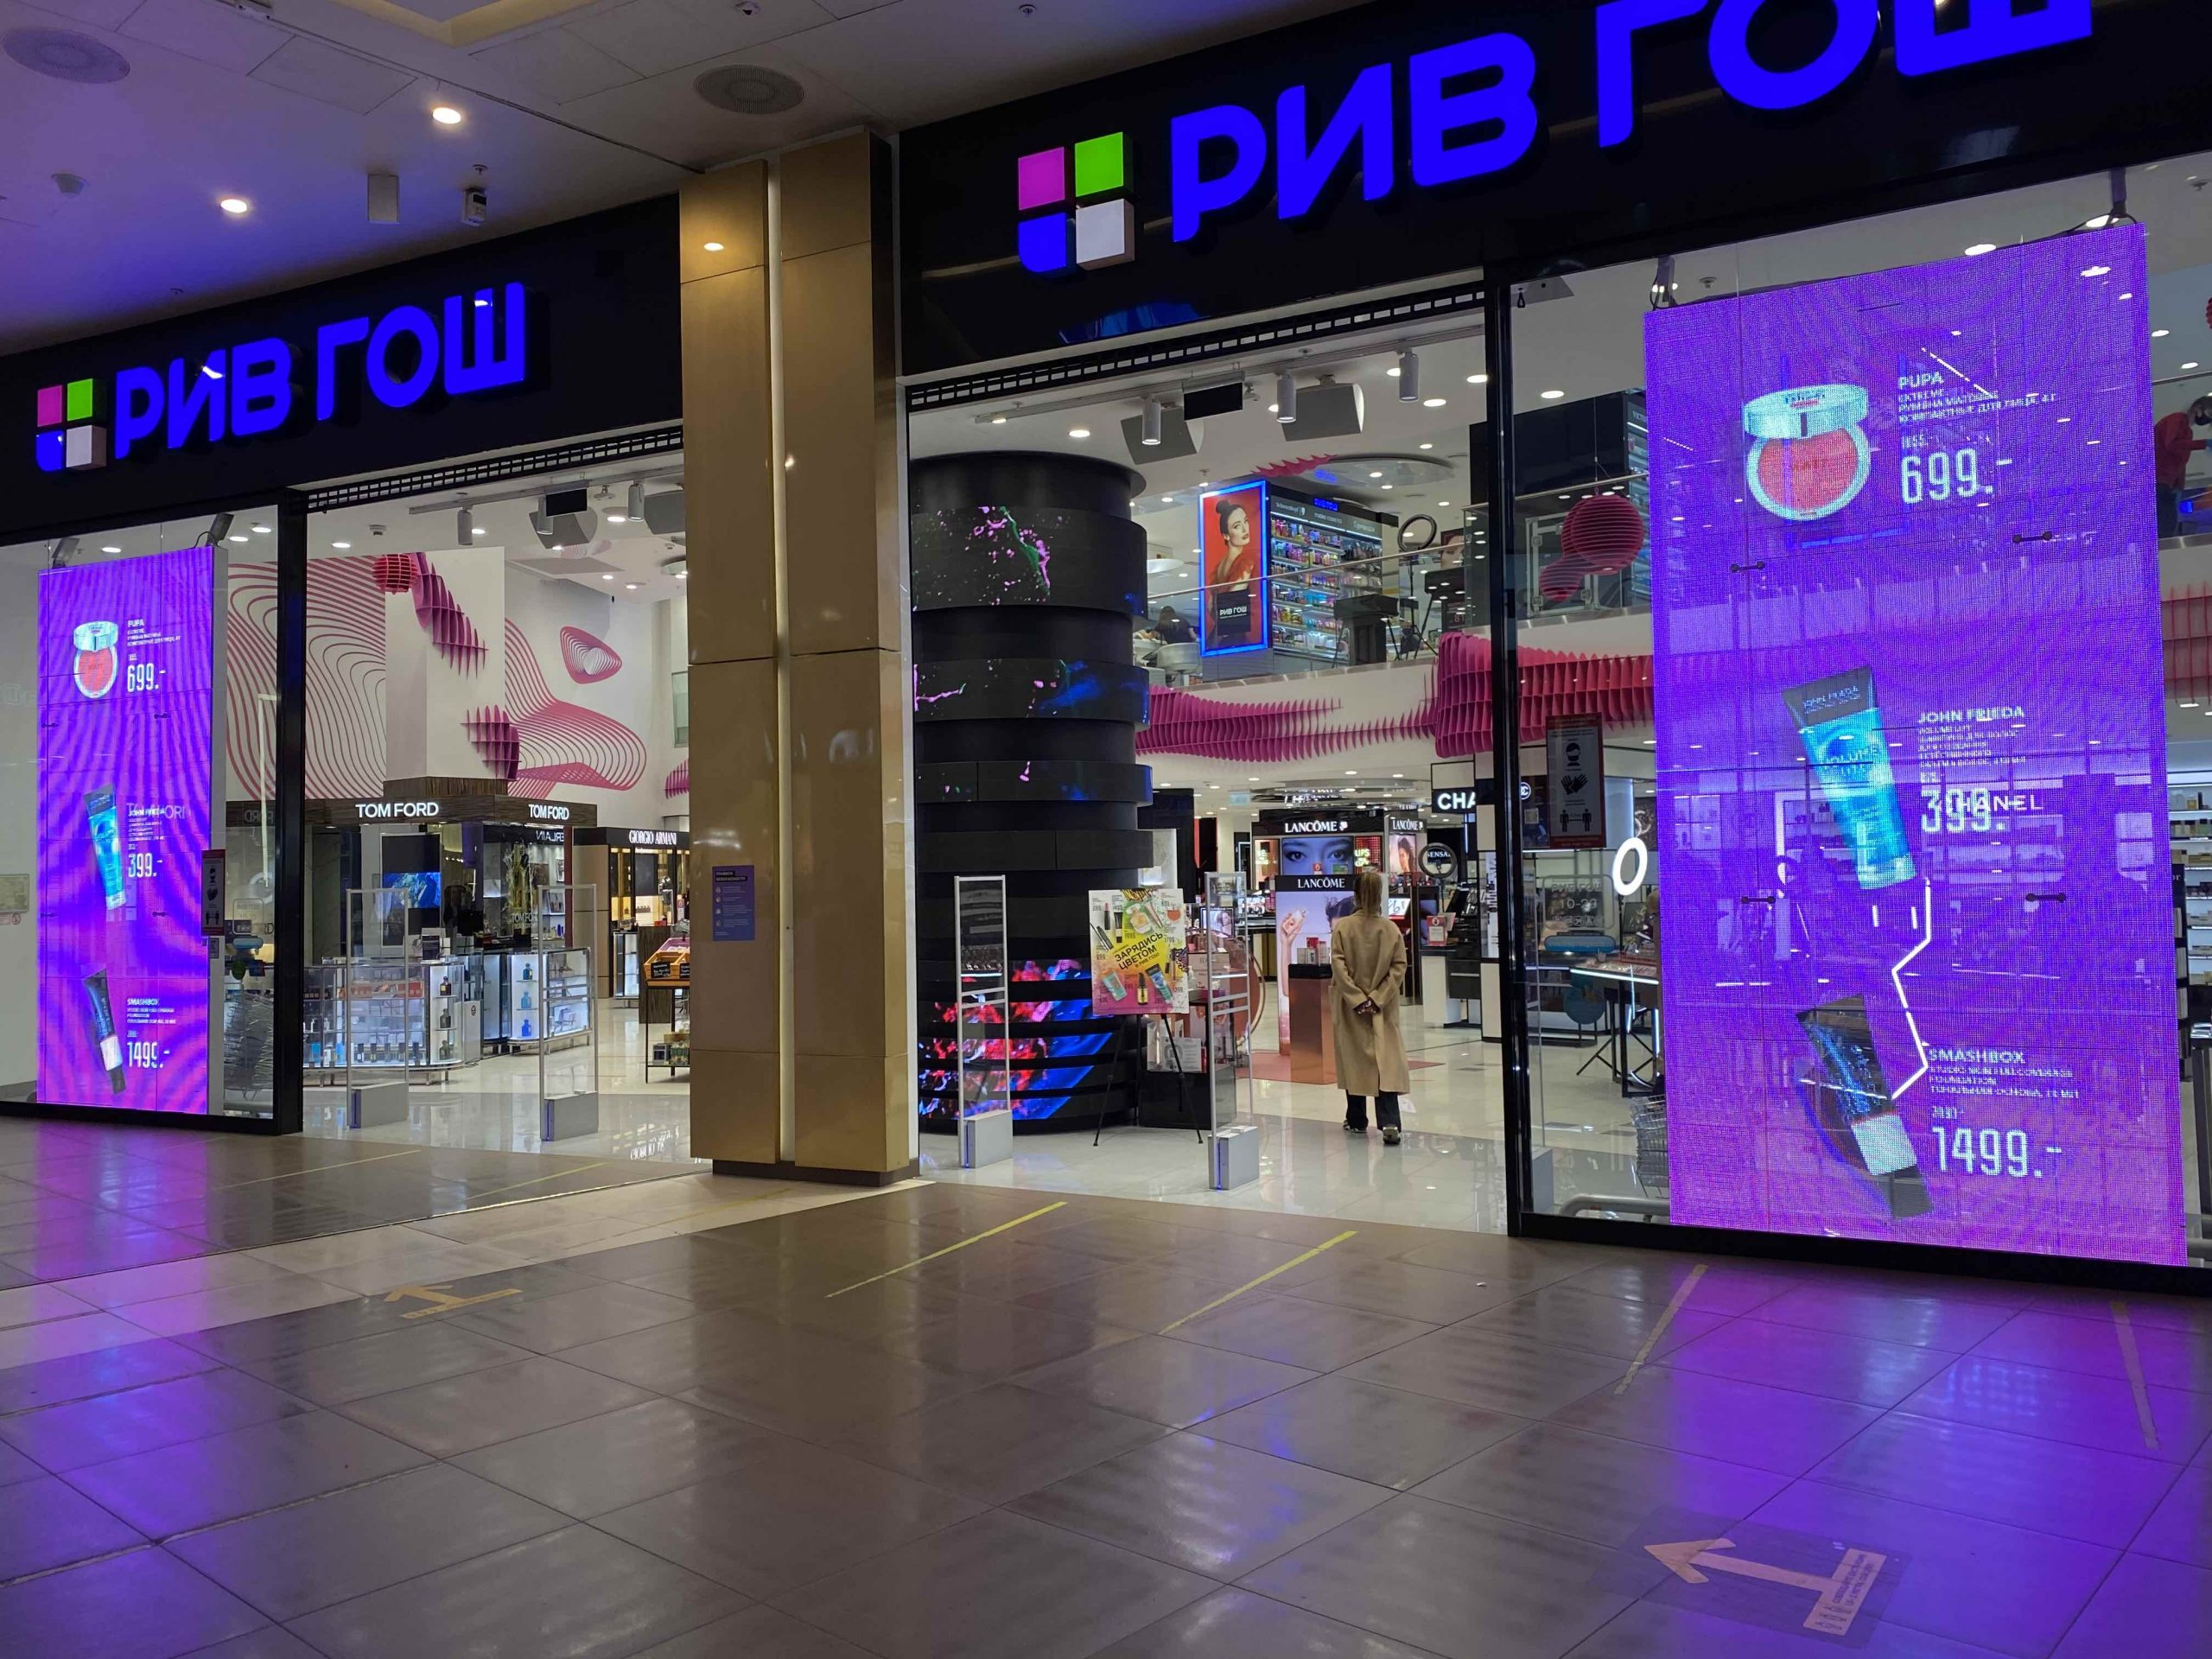 Transparent LED retail facade window display screen pitch 8 for shopping mall 4